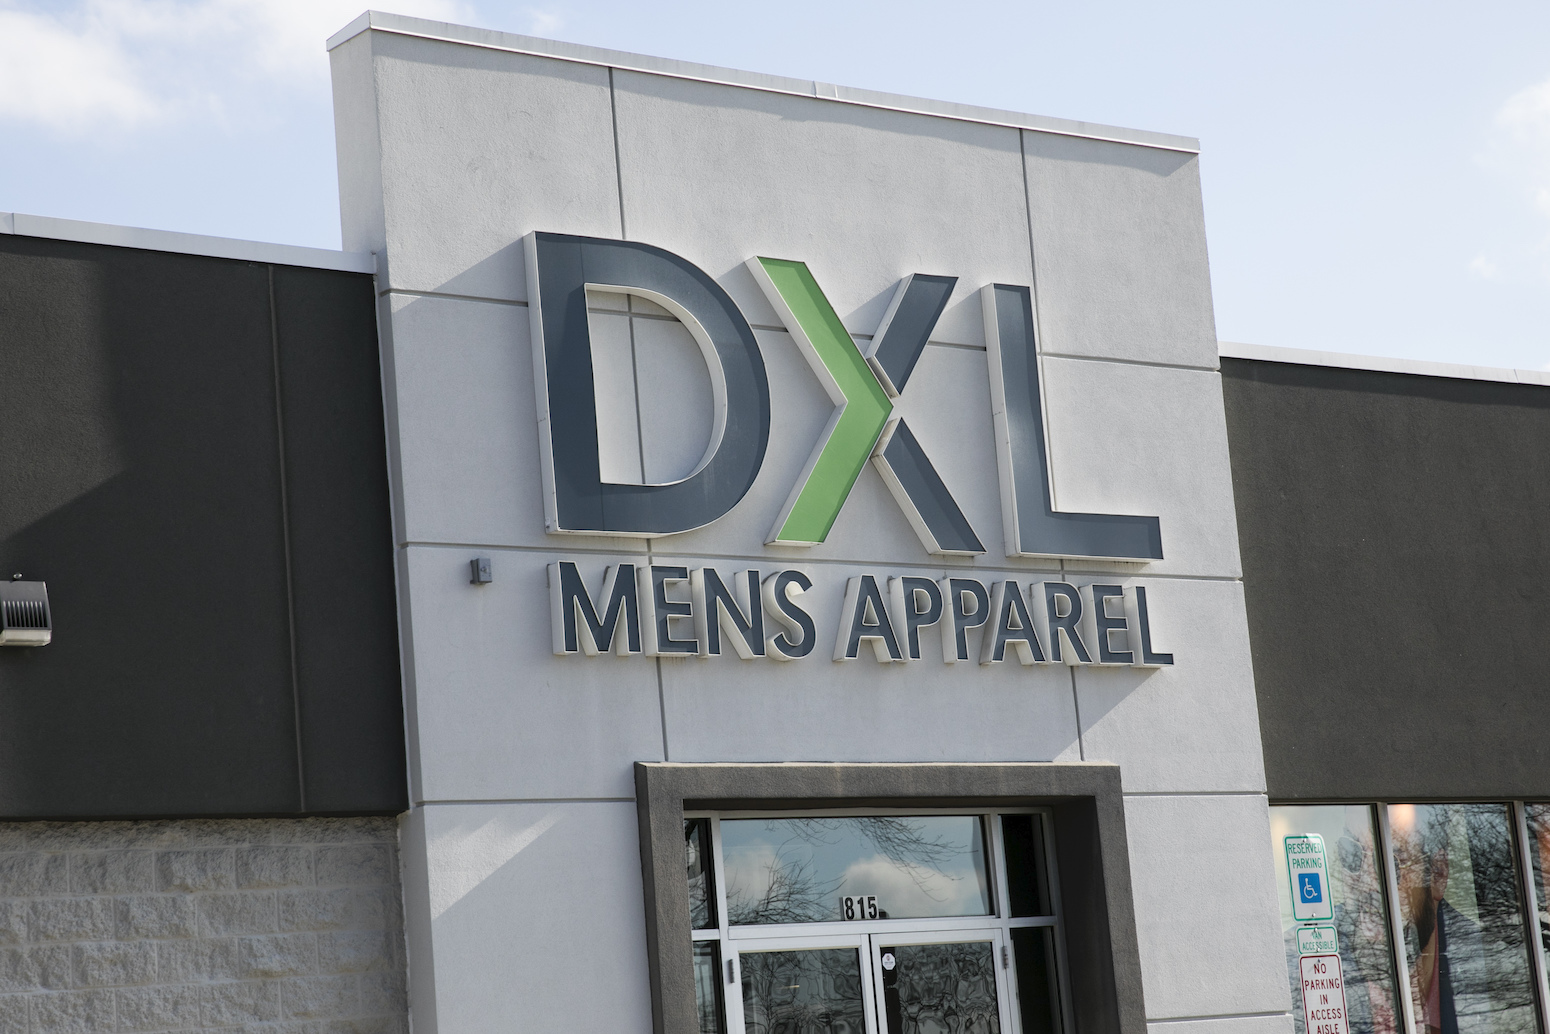 Destination XL Group saw sales jump 81 percent to $138.6 million, but CEO Harvey Kanter said inventory declines were steeper than desired.